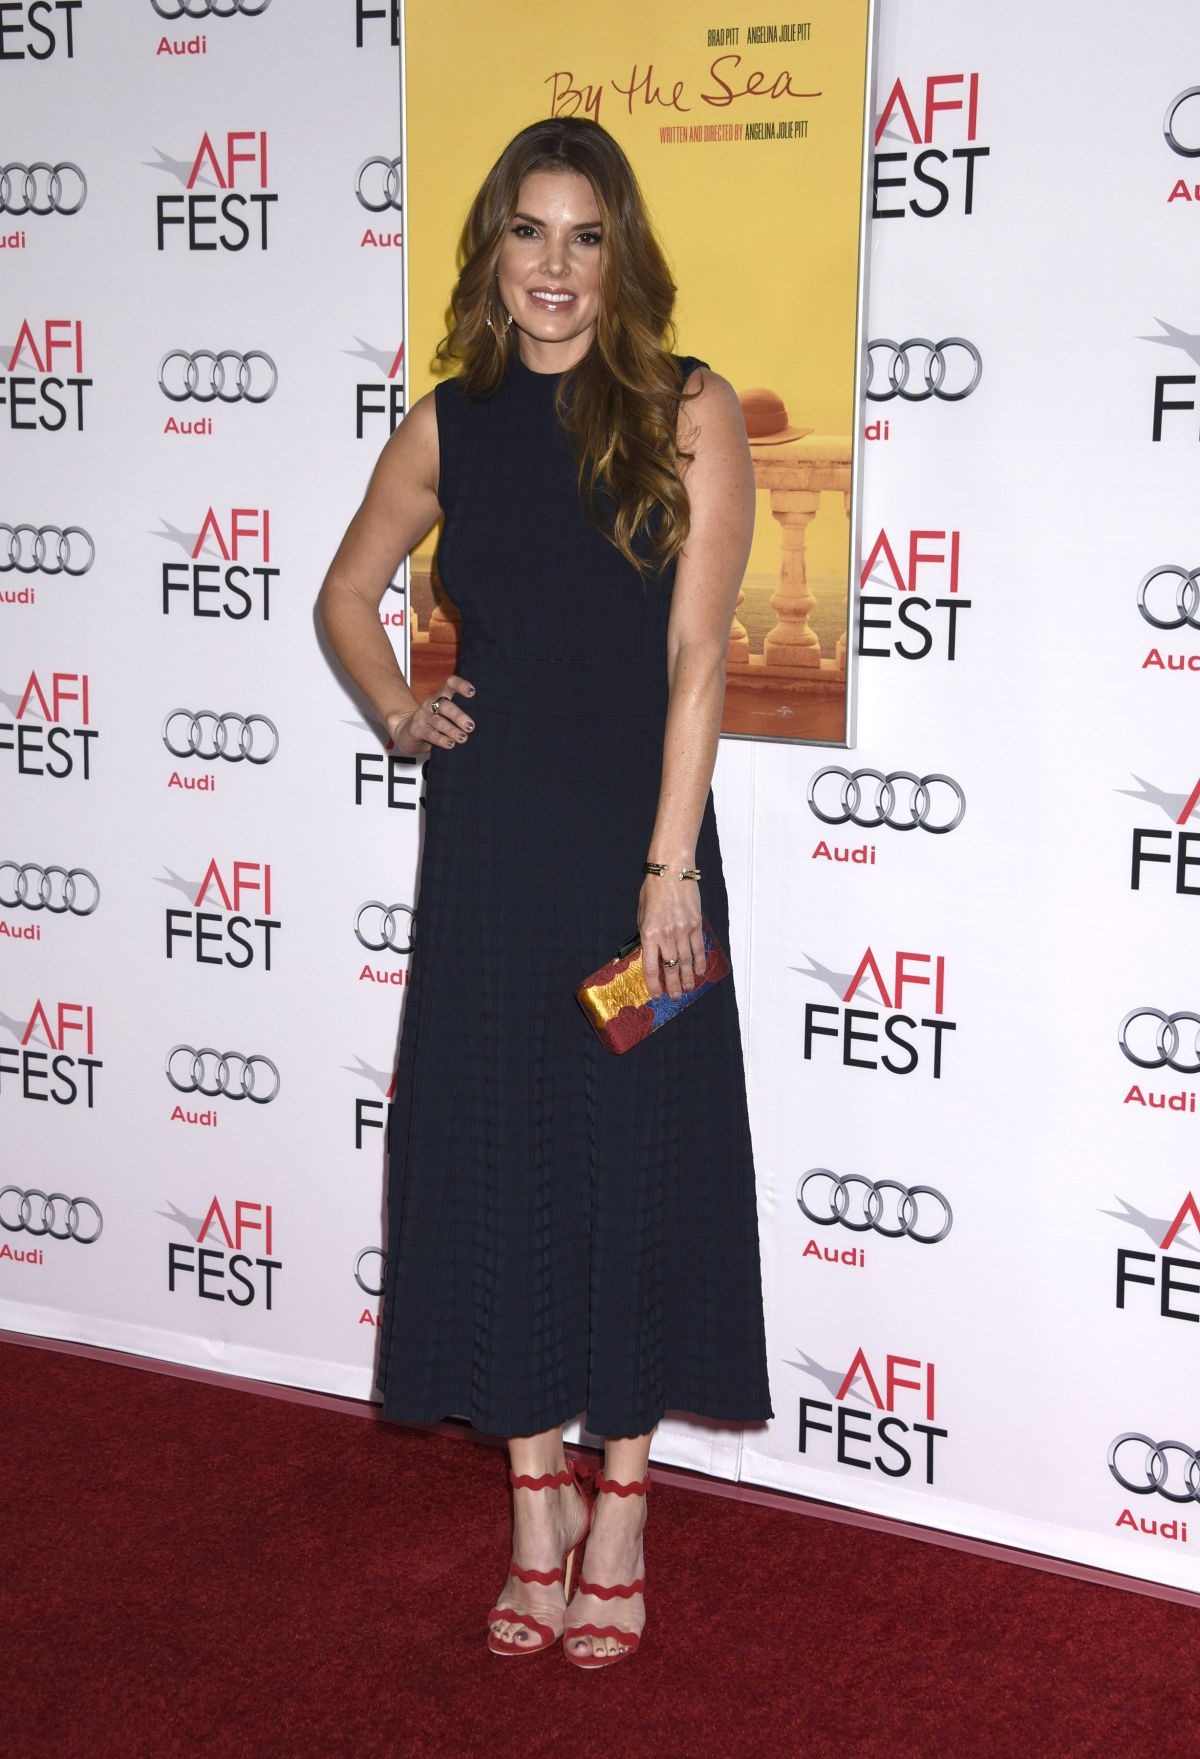 NIKKI MOORE at AFI Fest 2015 Opening Night Gala in Hollywood 11/05/2015